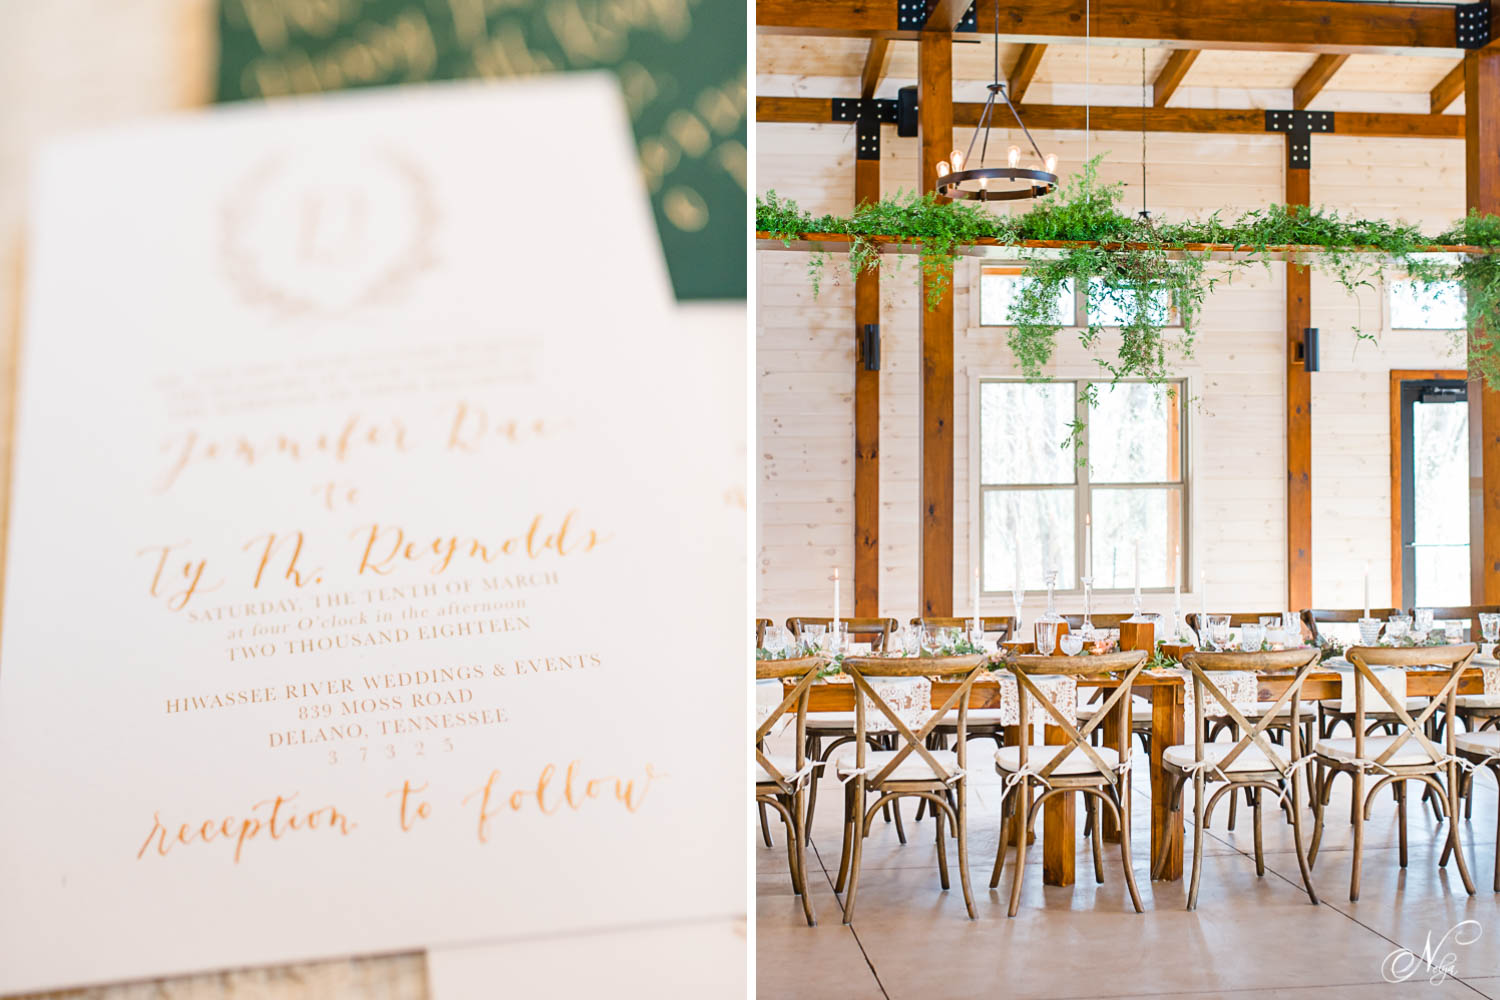 gold and white invitations onlace andcrossback chairs rentals and reception inDelano TN